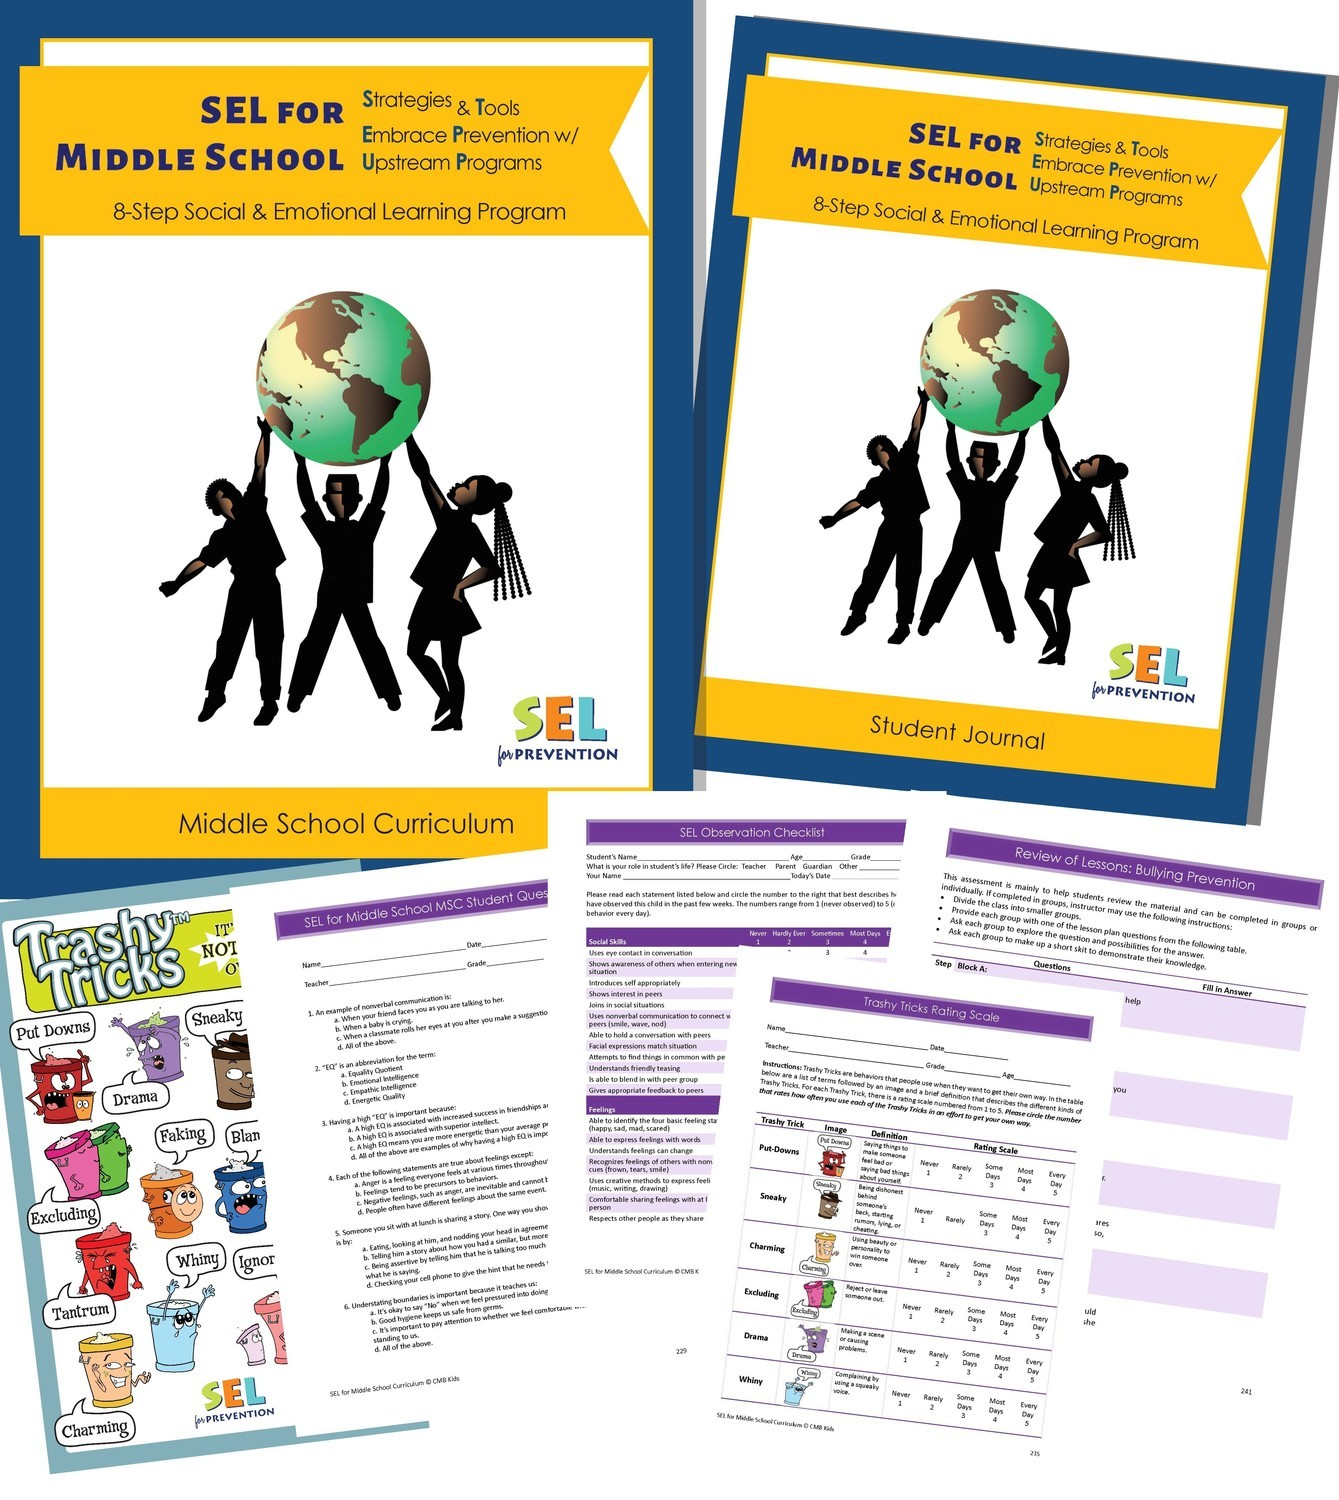 SEL for Prevention Middle School Curriculum - Print Version